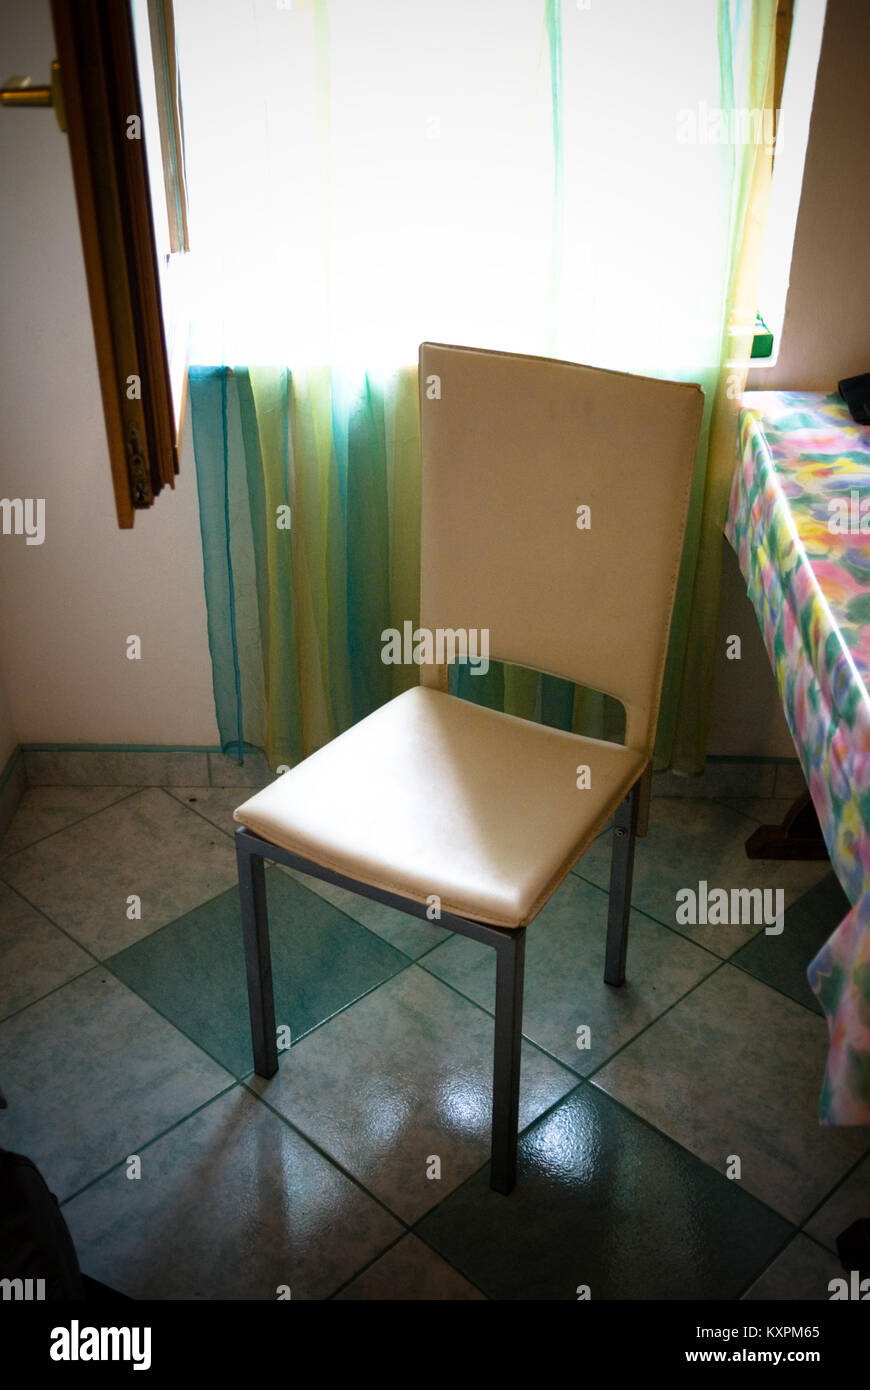 a single empty chair on a tiled kitchen floor near a curtained ...